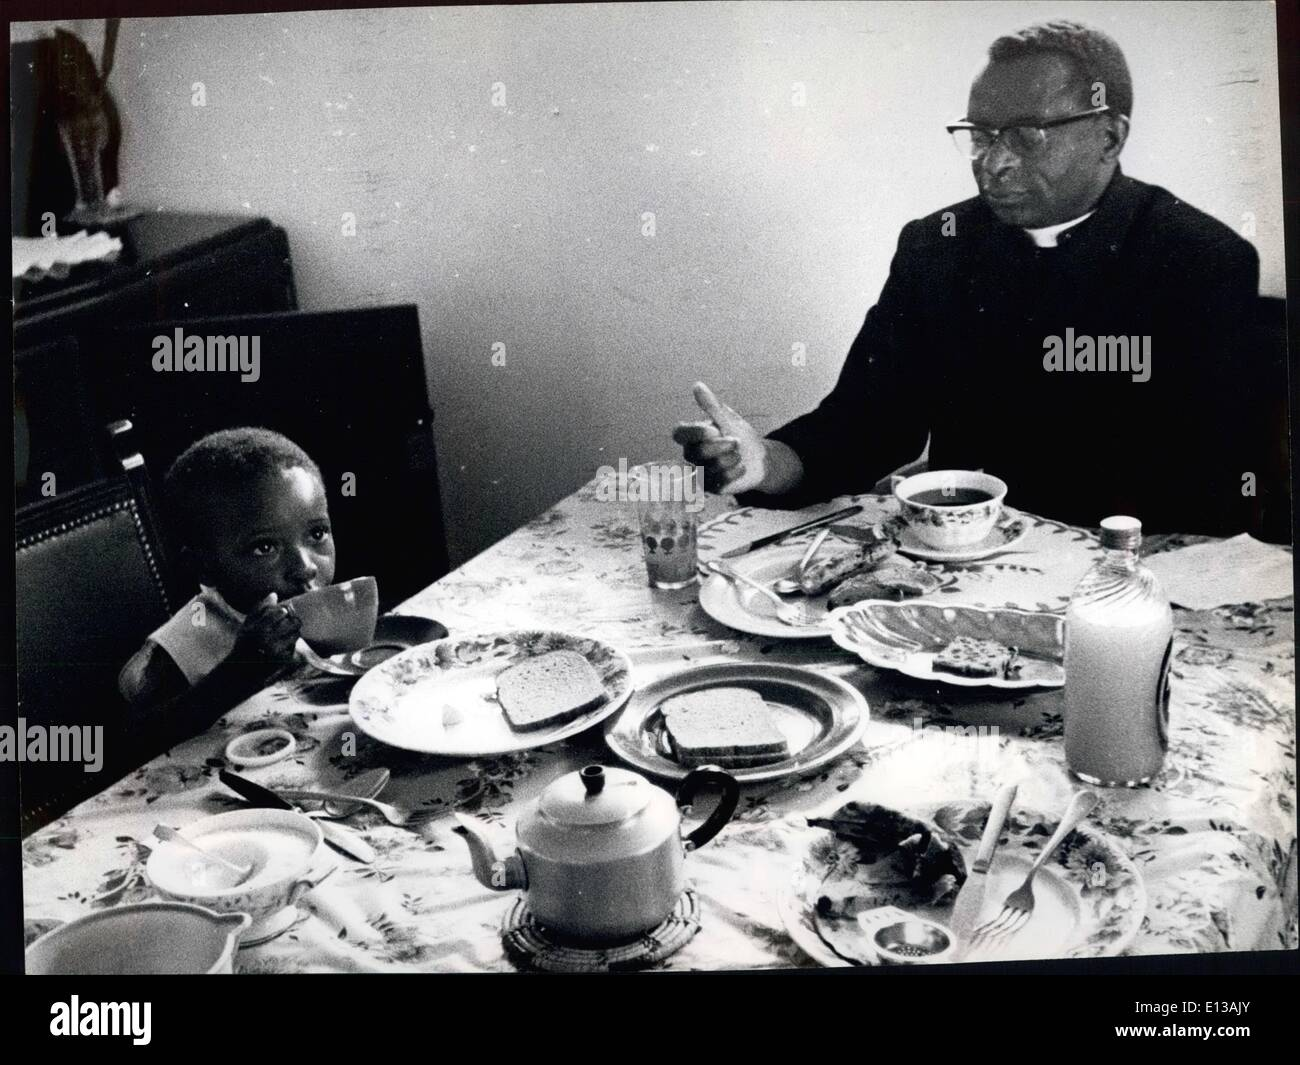 Feb. 29, 2012 - Bishop Muzorewa talks to his baby daughter at the breakfast table. - Stock Image